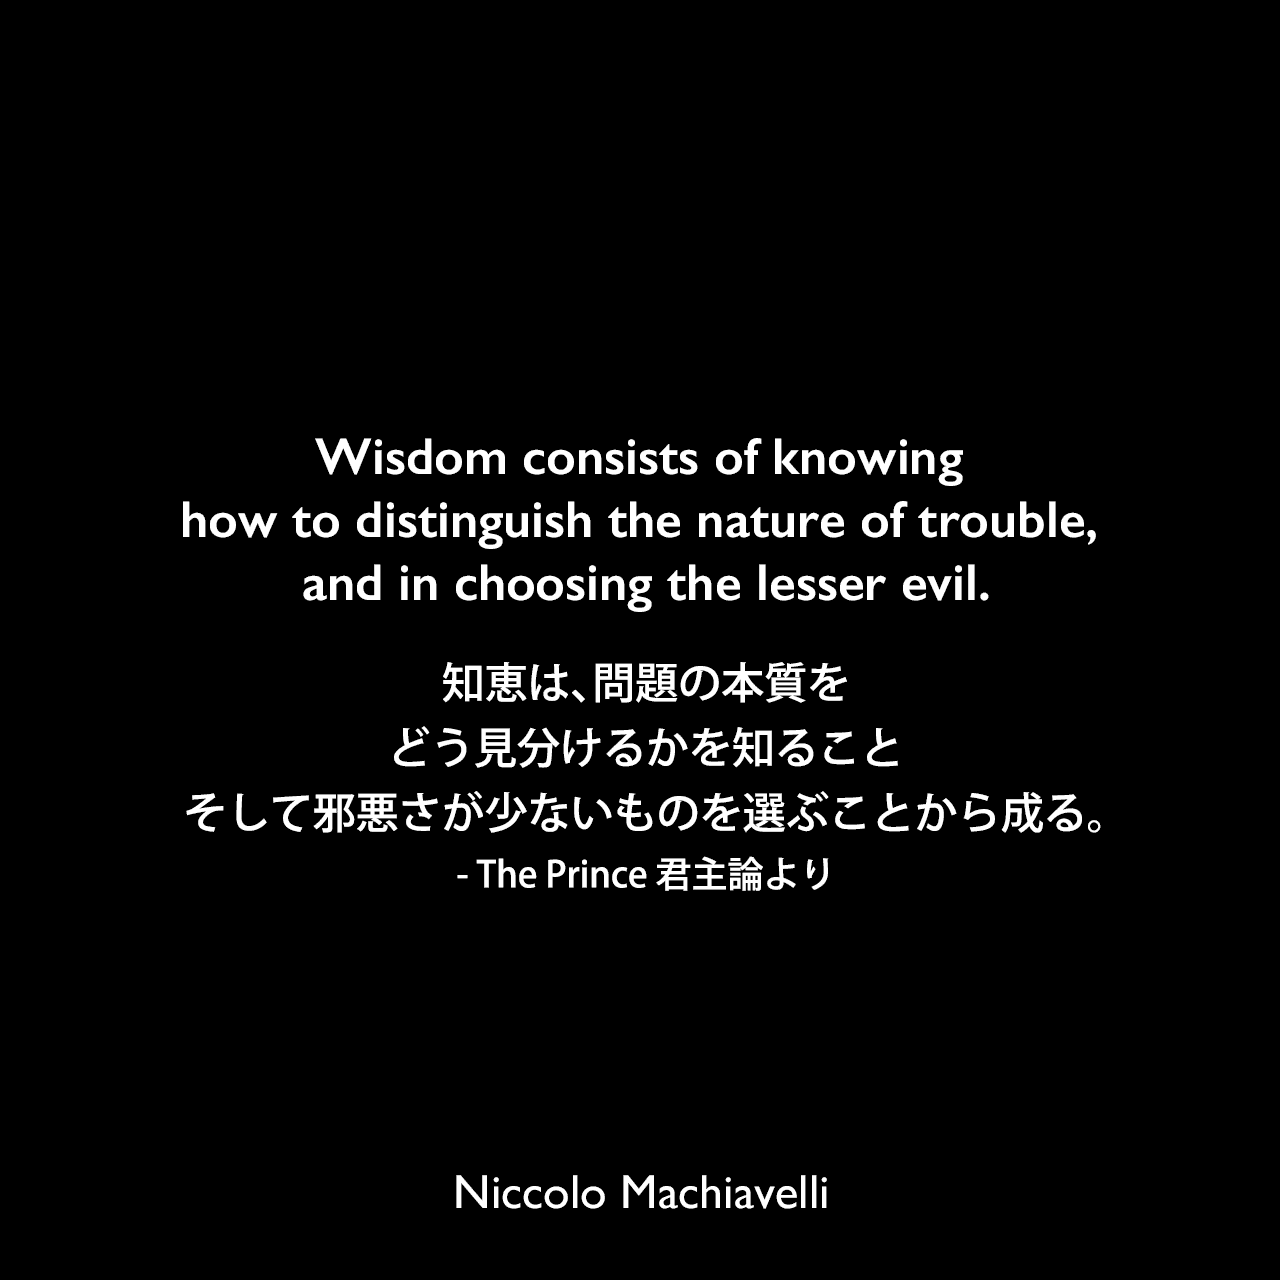 Wisdom consists of knowing how to distinguish the nature of trouble, and in choosing the lesser evil.知恵は、問題の本質をどう見分けるかを知ること、そして邪悪さが少ないものを選ぶことから成る。- The Prince 君主論よりNiccolo Machiavelli